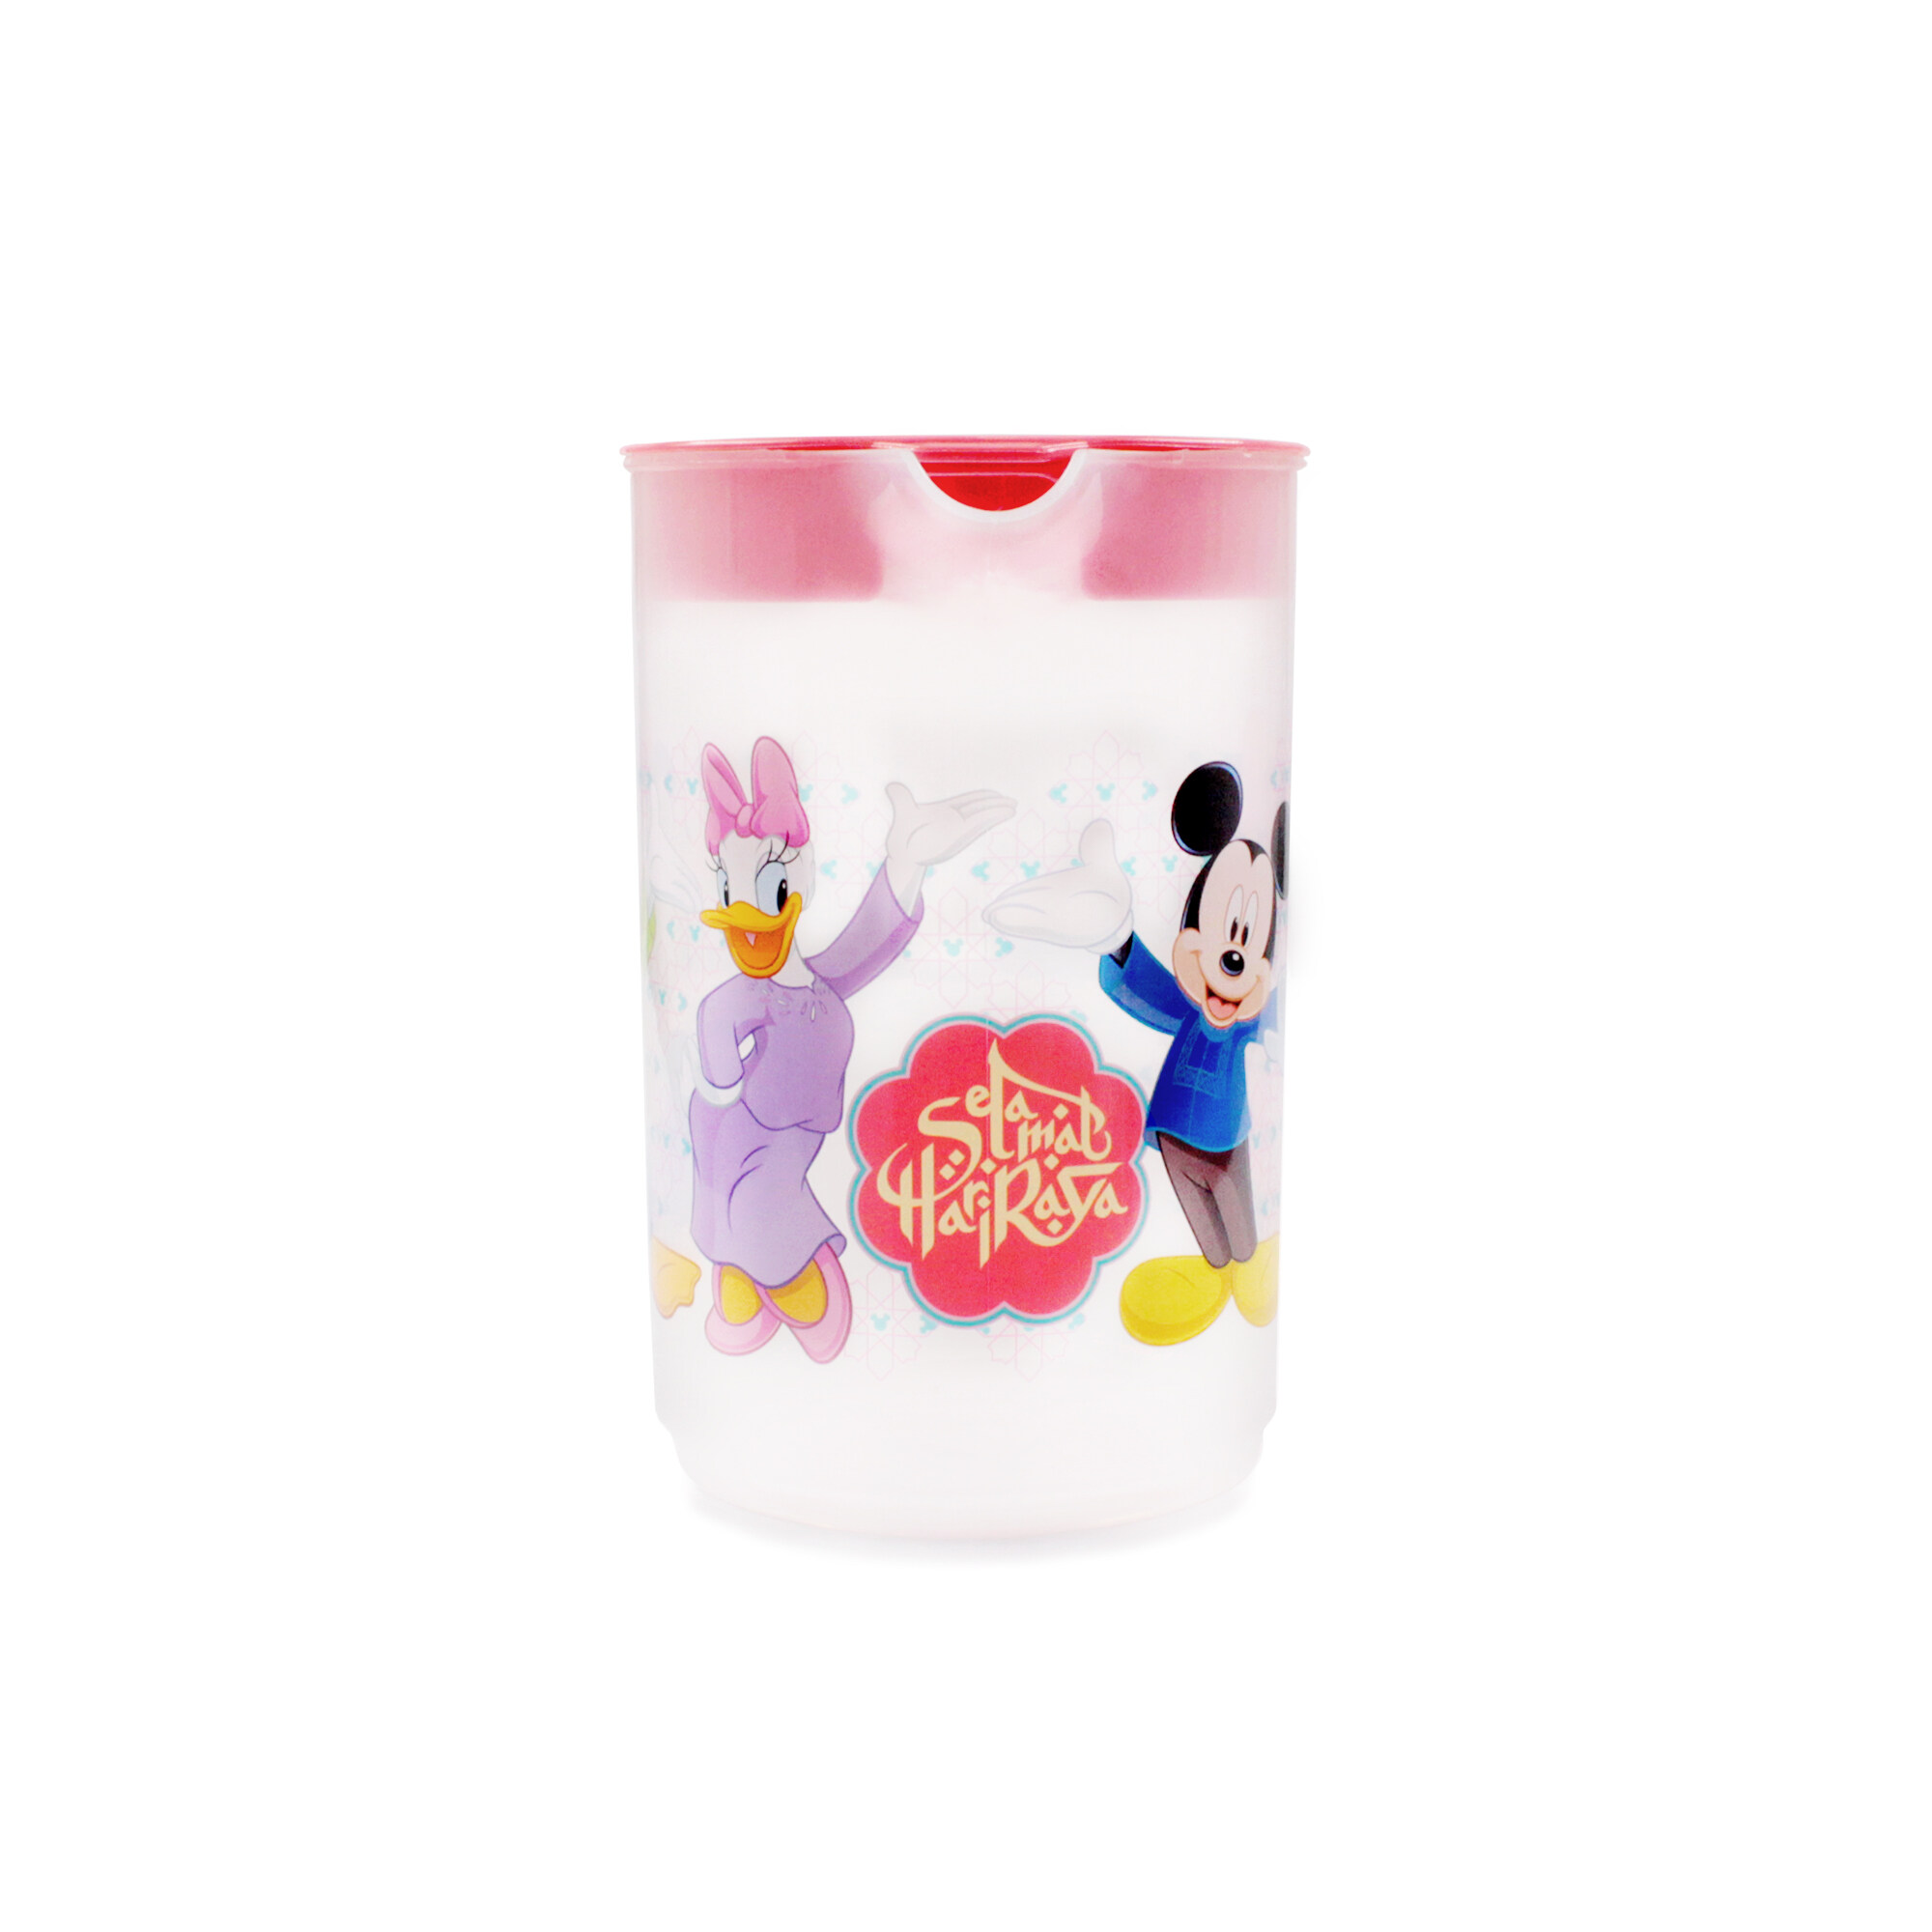 Disney Mickey And Friends Raya Latest Edition Water Jug 2200ML -Red Colour